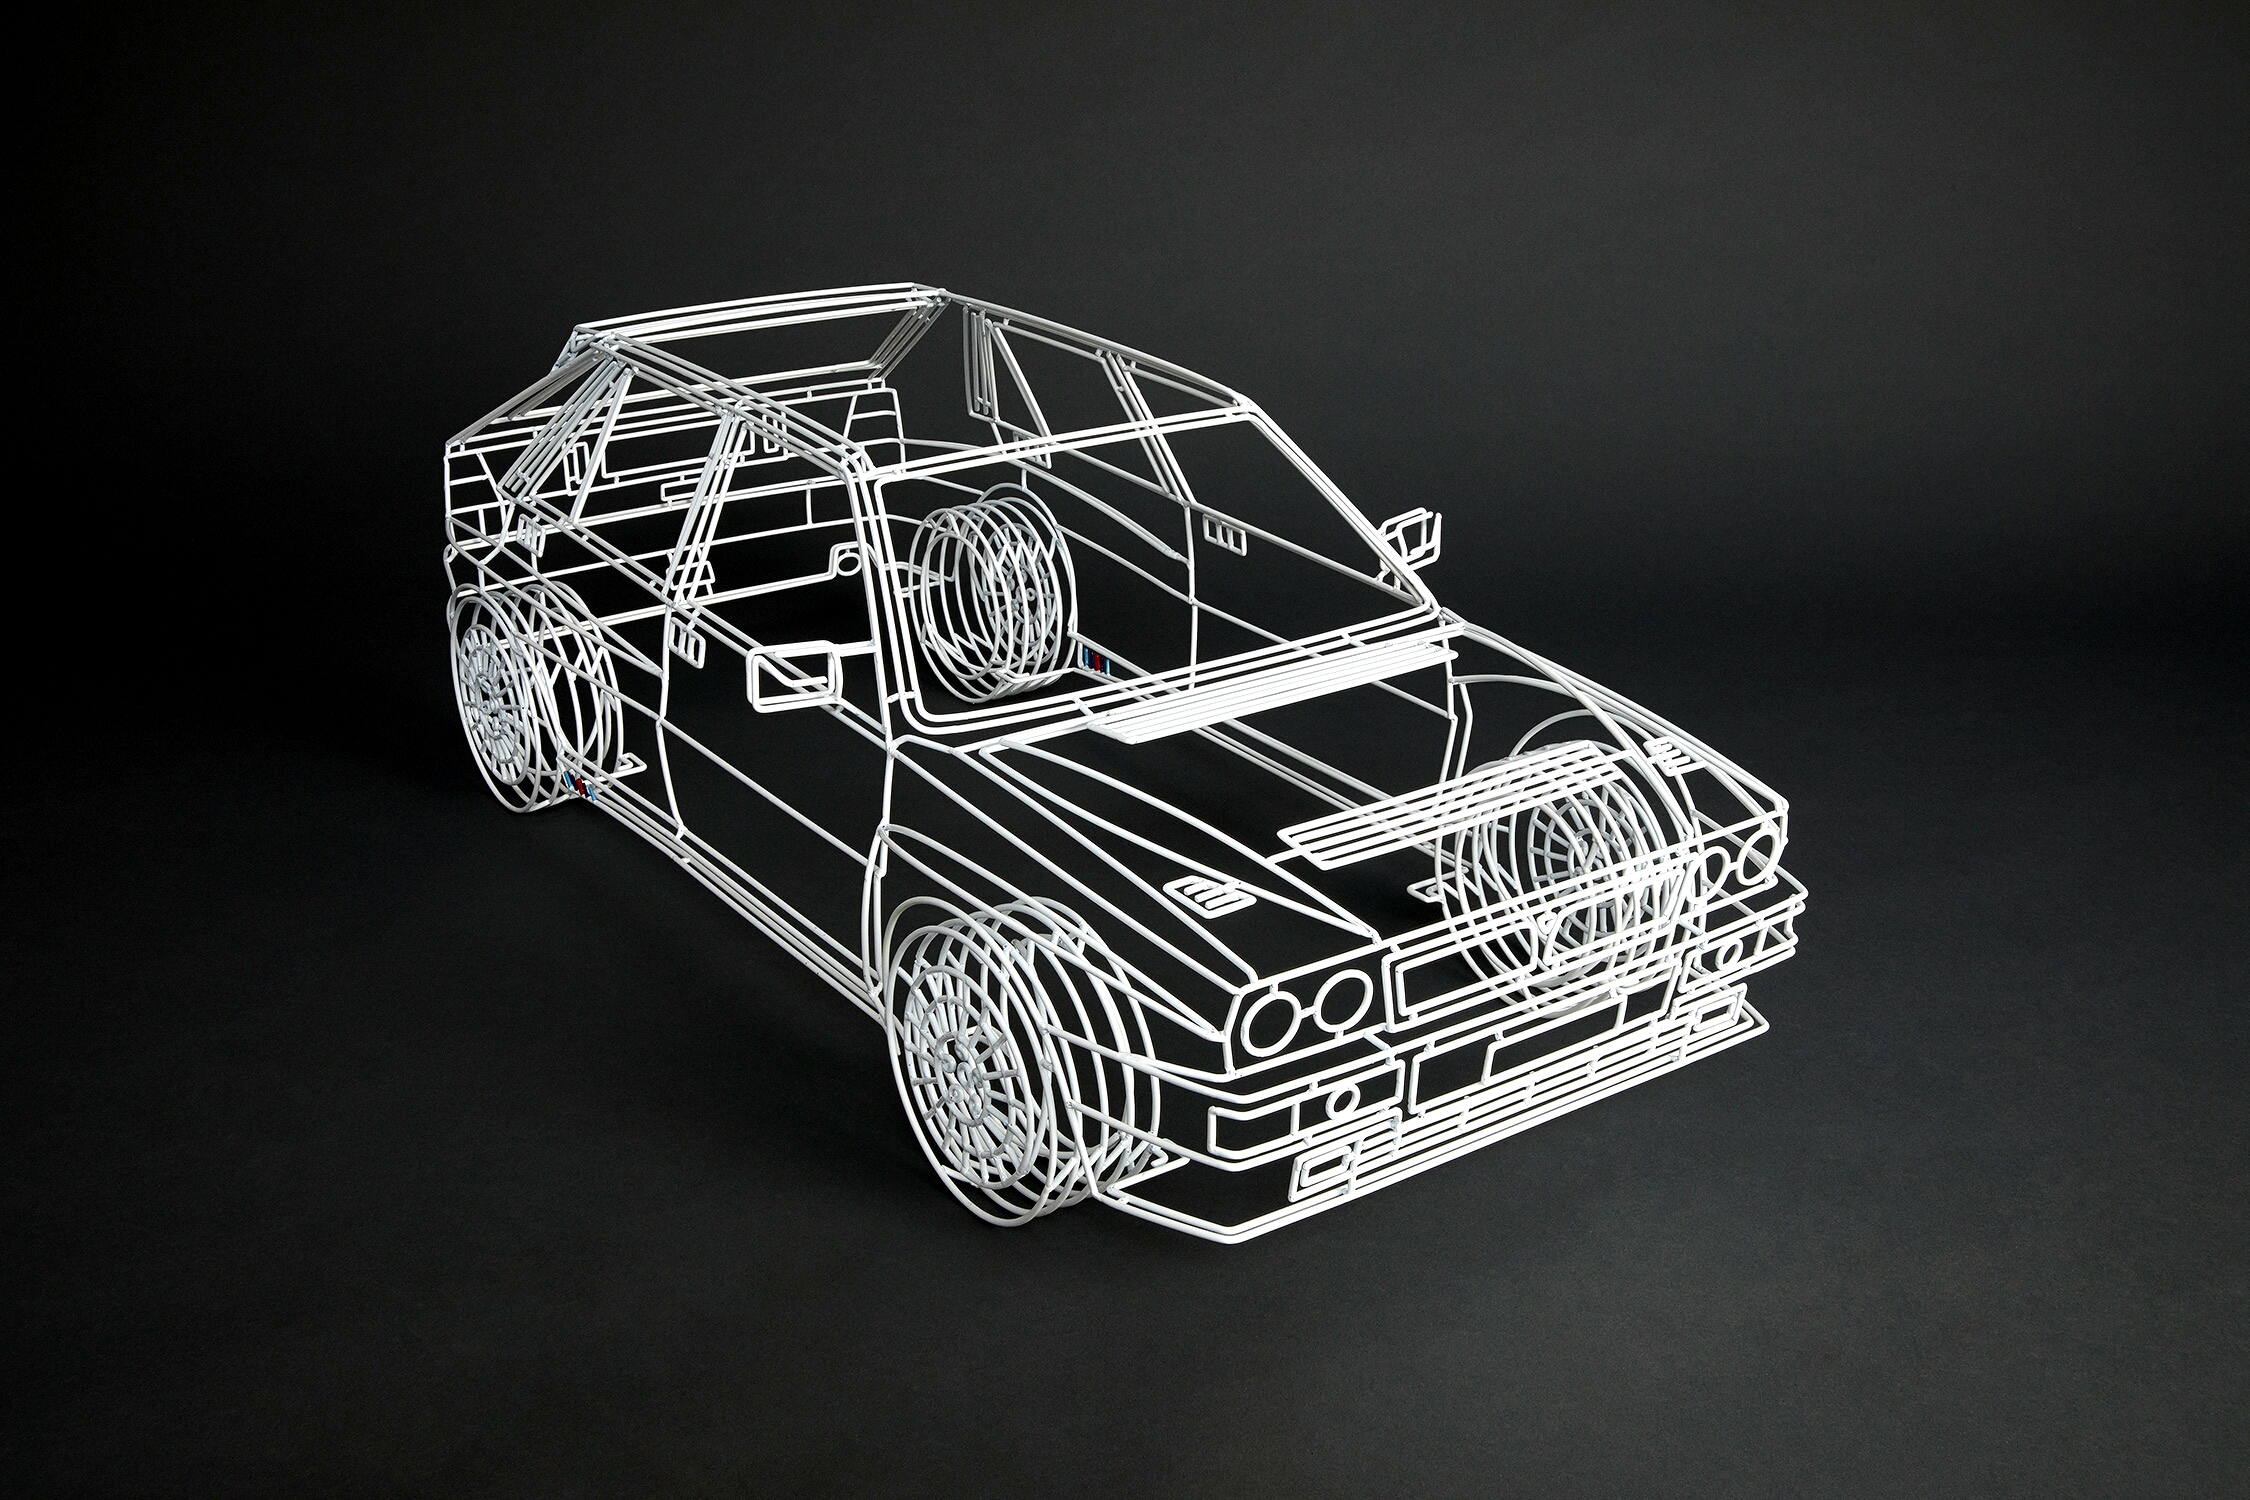 You've also been doing other projects besides the cars, such as a skate bowl and a double ended VW Golf IV? Are you broadening your scope with this?